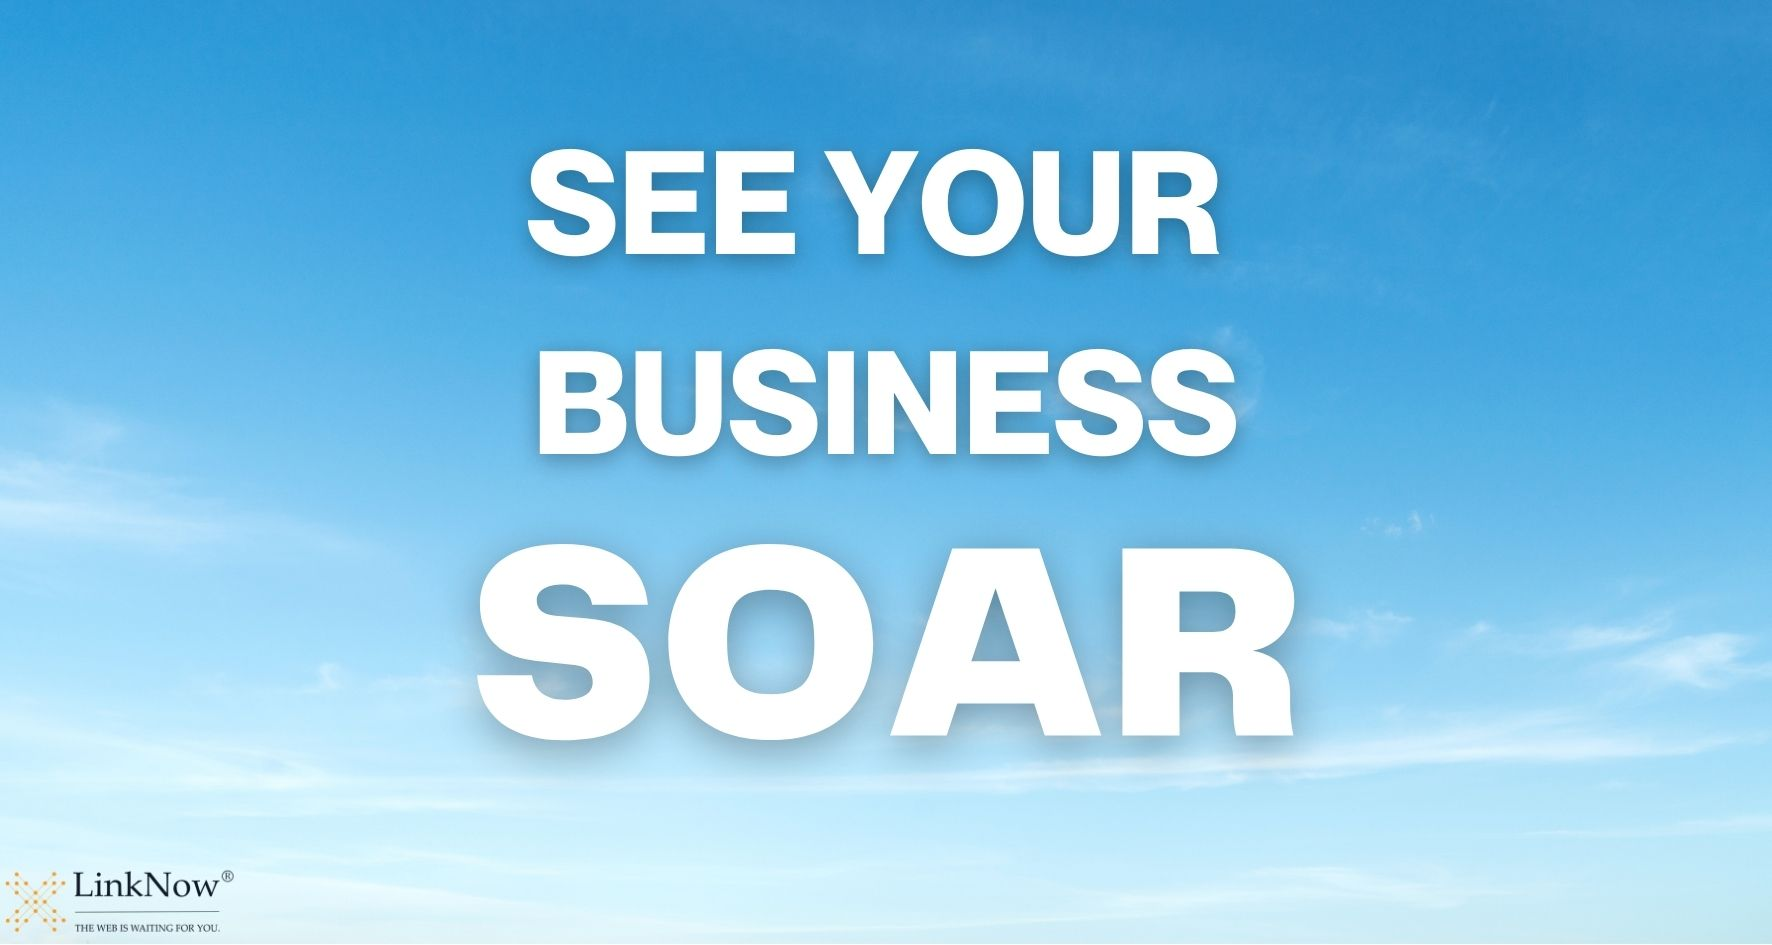 Sky background with text: See your business soar.